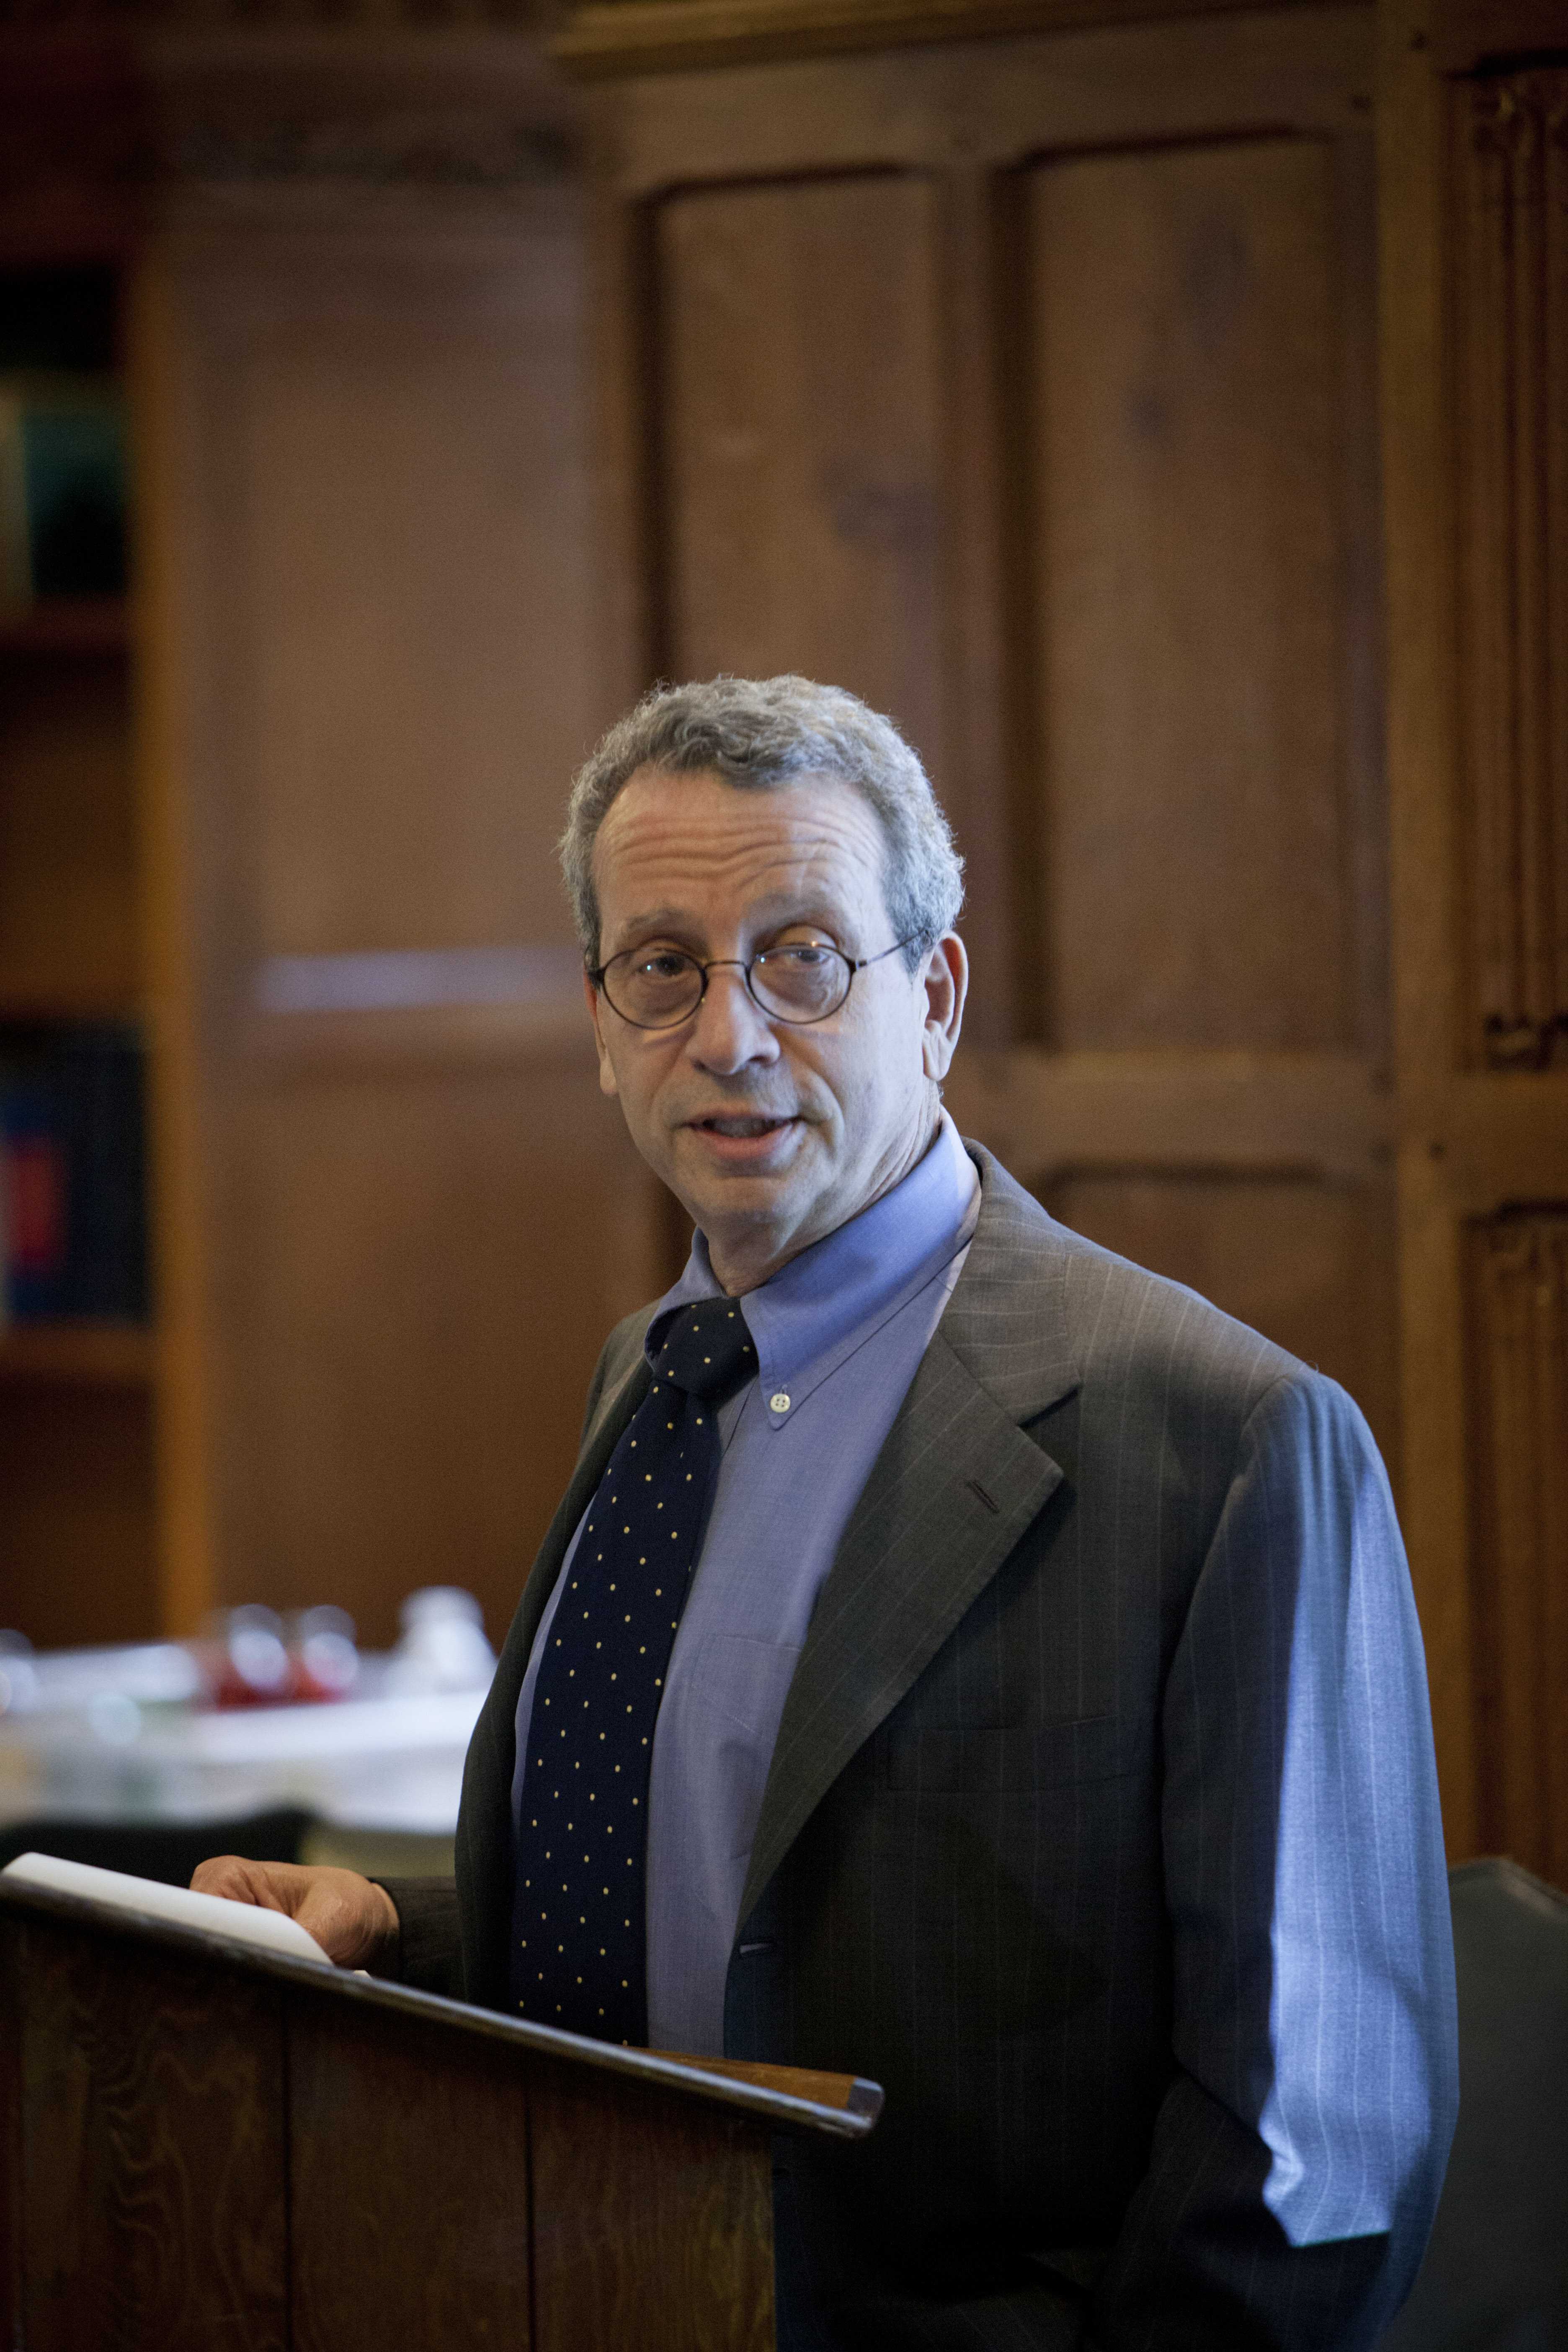 MIT Econ. Prof. Stephen A. Ross